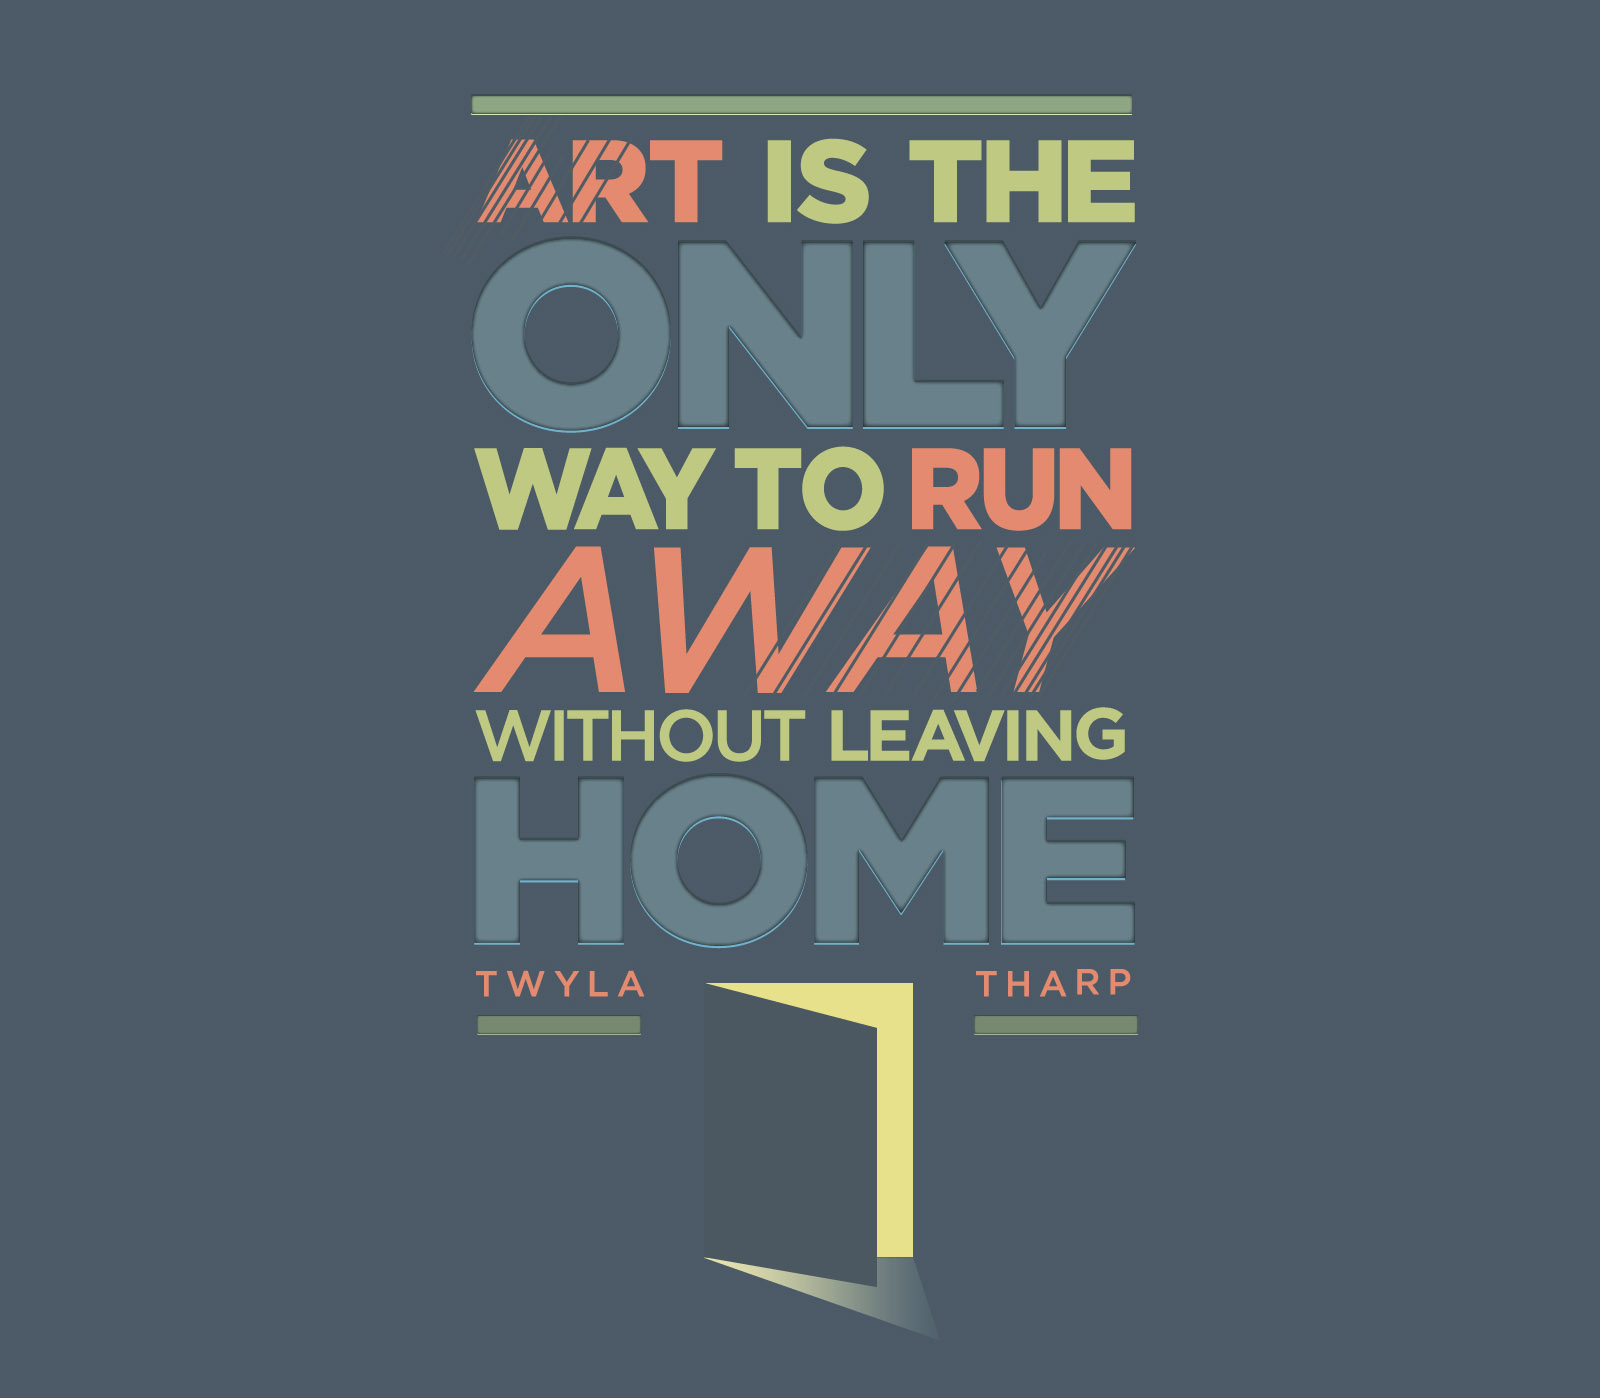 Art Quotes: 64 Top Art Quotes And Sayings